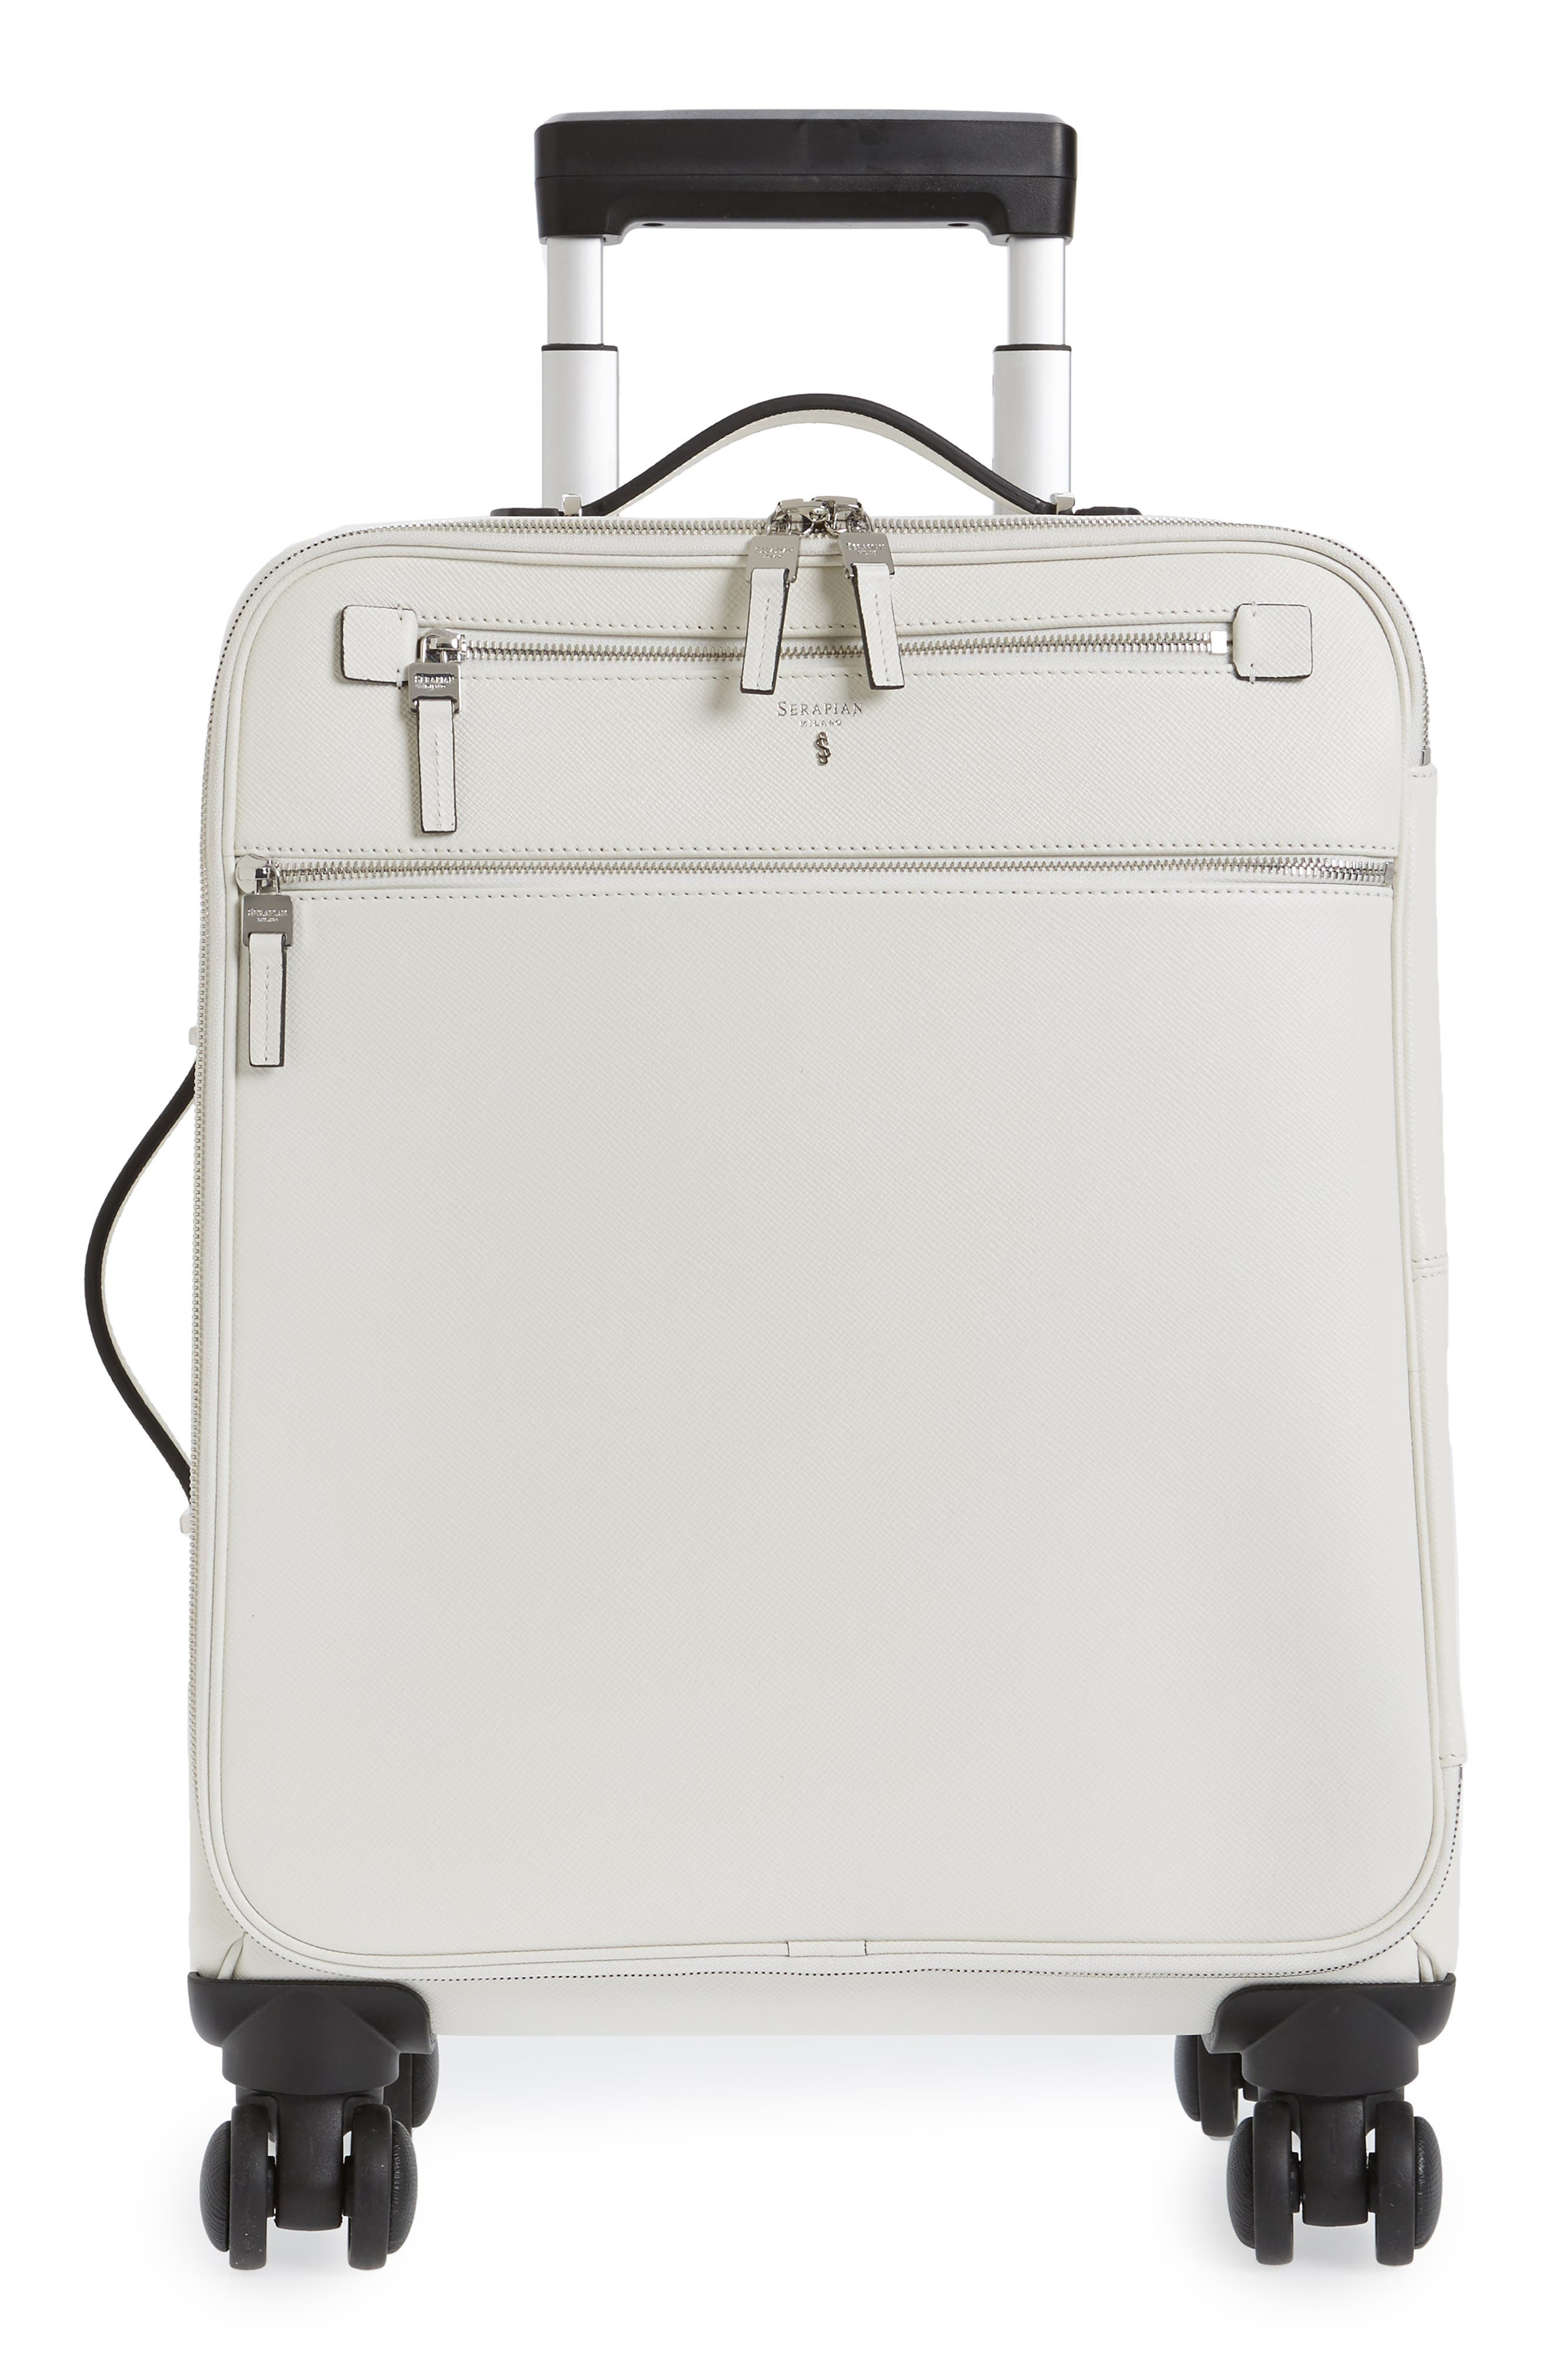 Trolley Spinner Wheeled Carry-On Suitcase,                         Main,                         color,